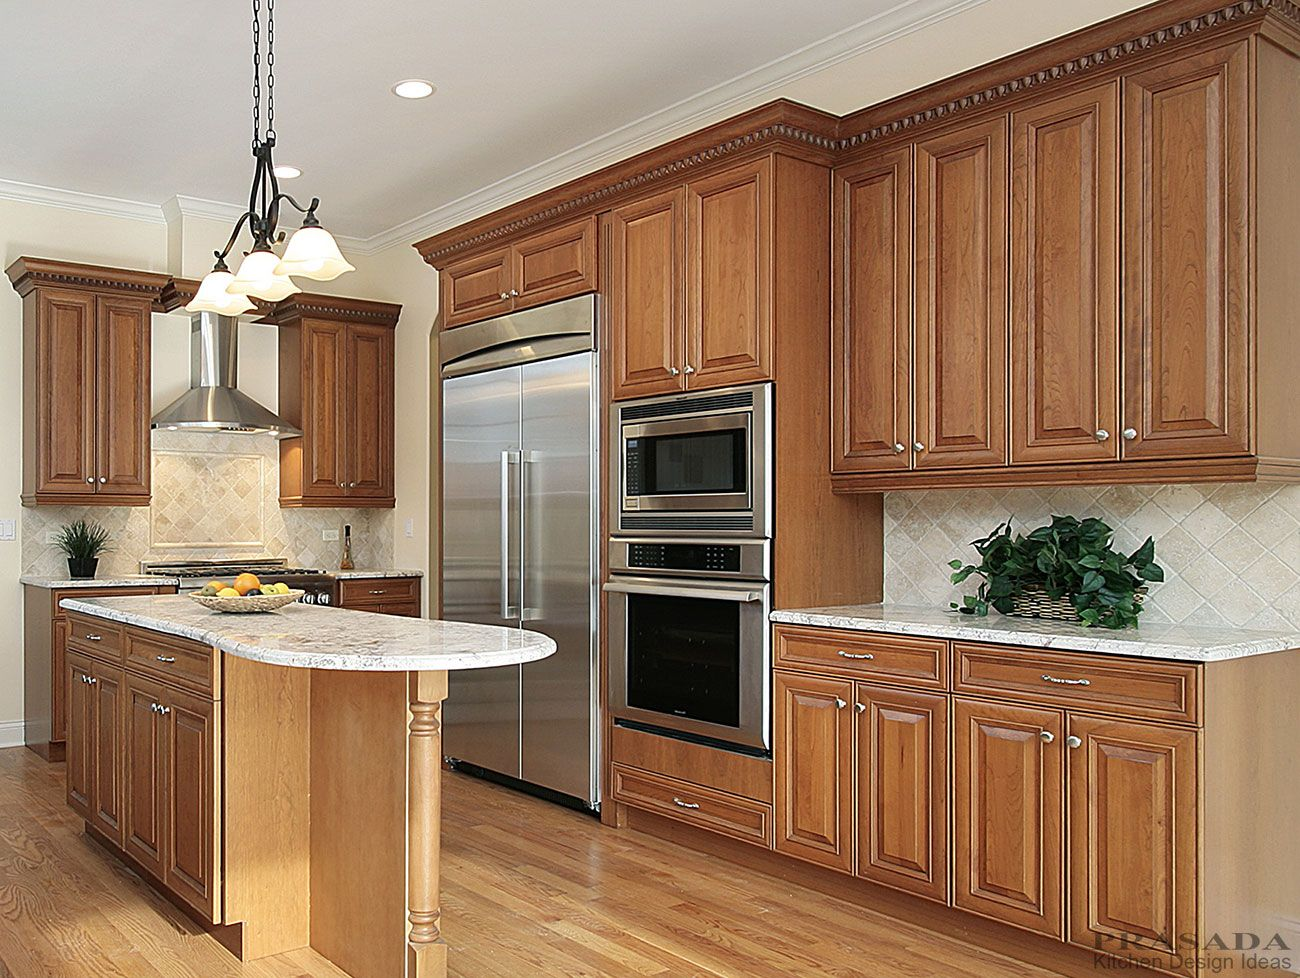 Kitchen Design Ideas | For the Home | Pinterest